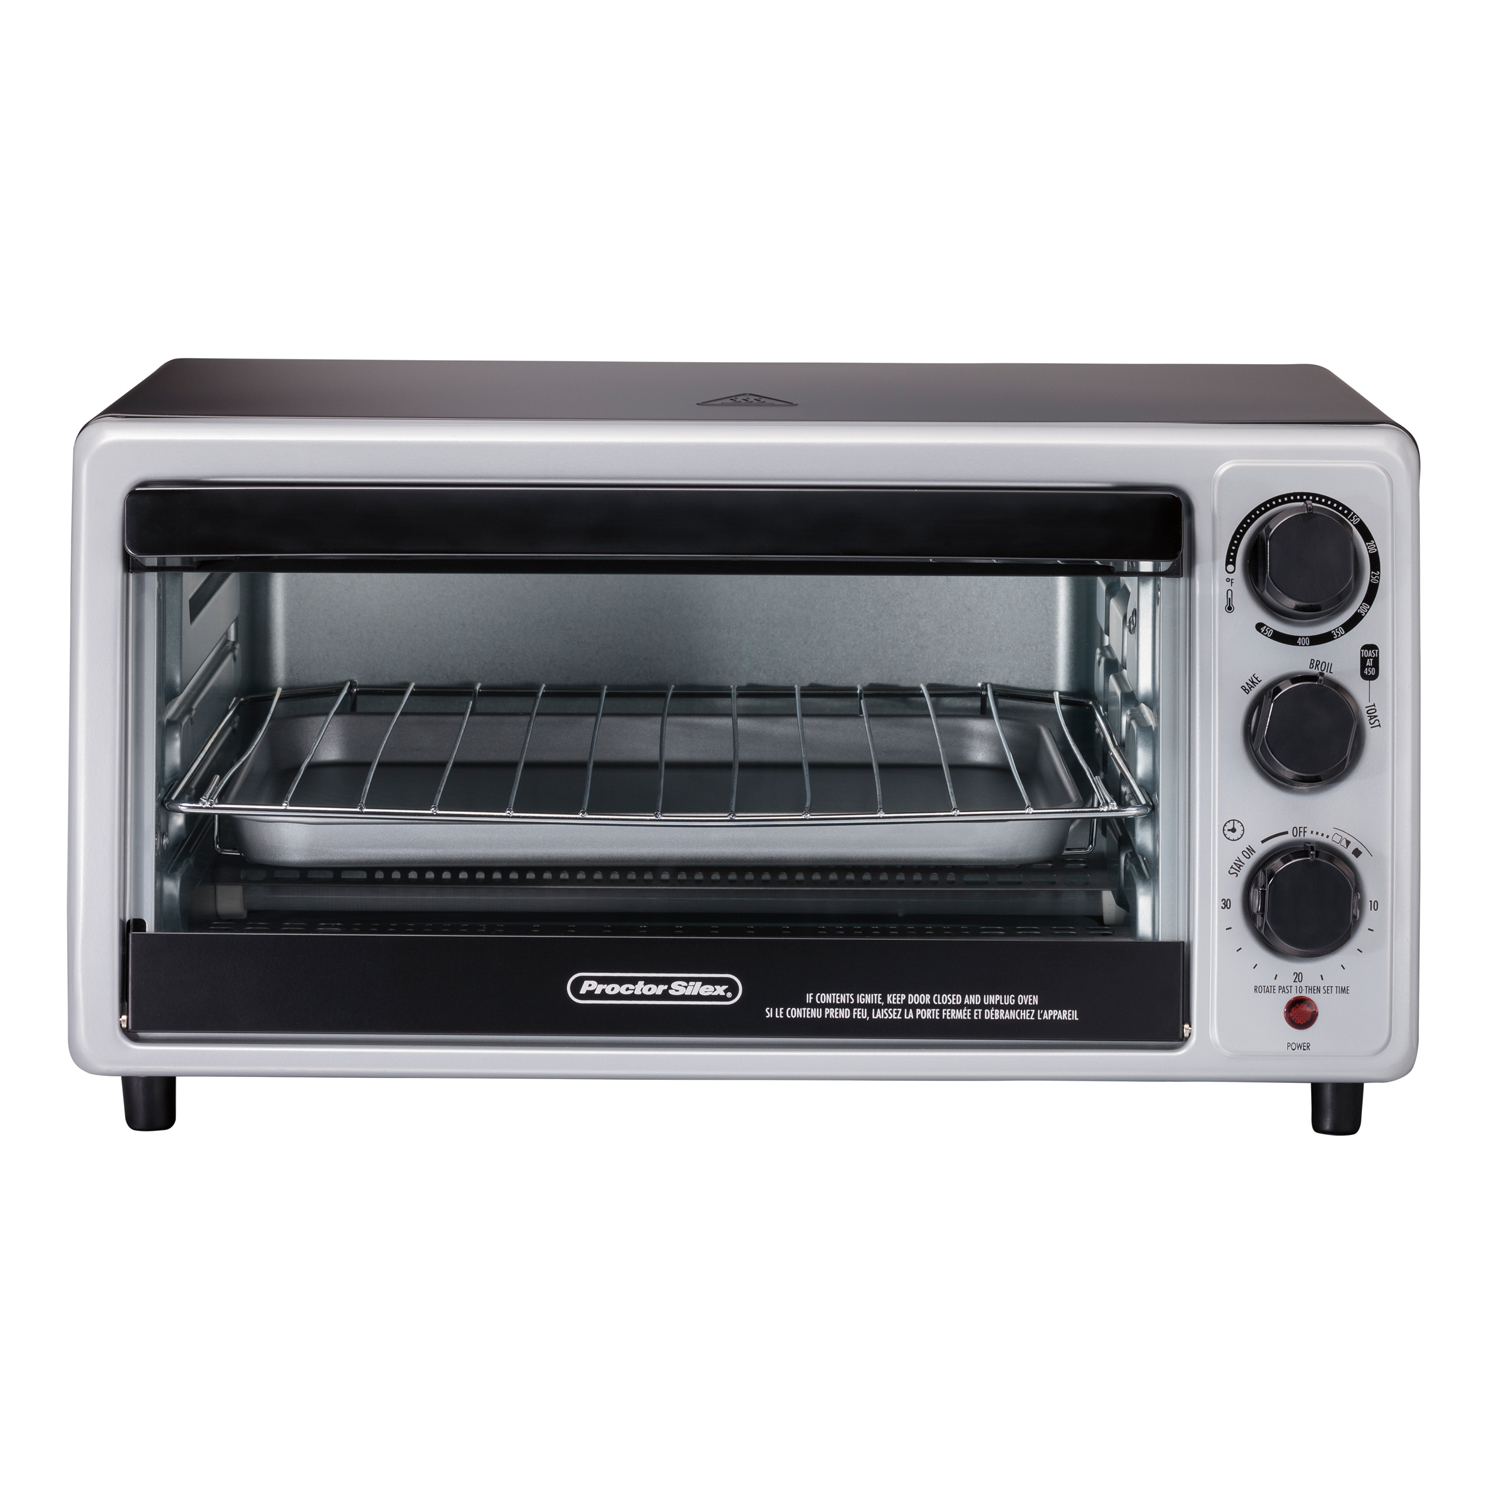 6 Slice Toaster Oven-31124 Small Size